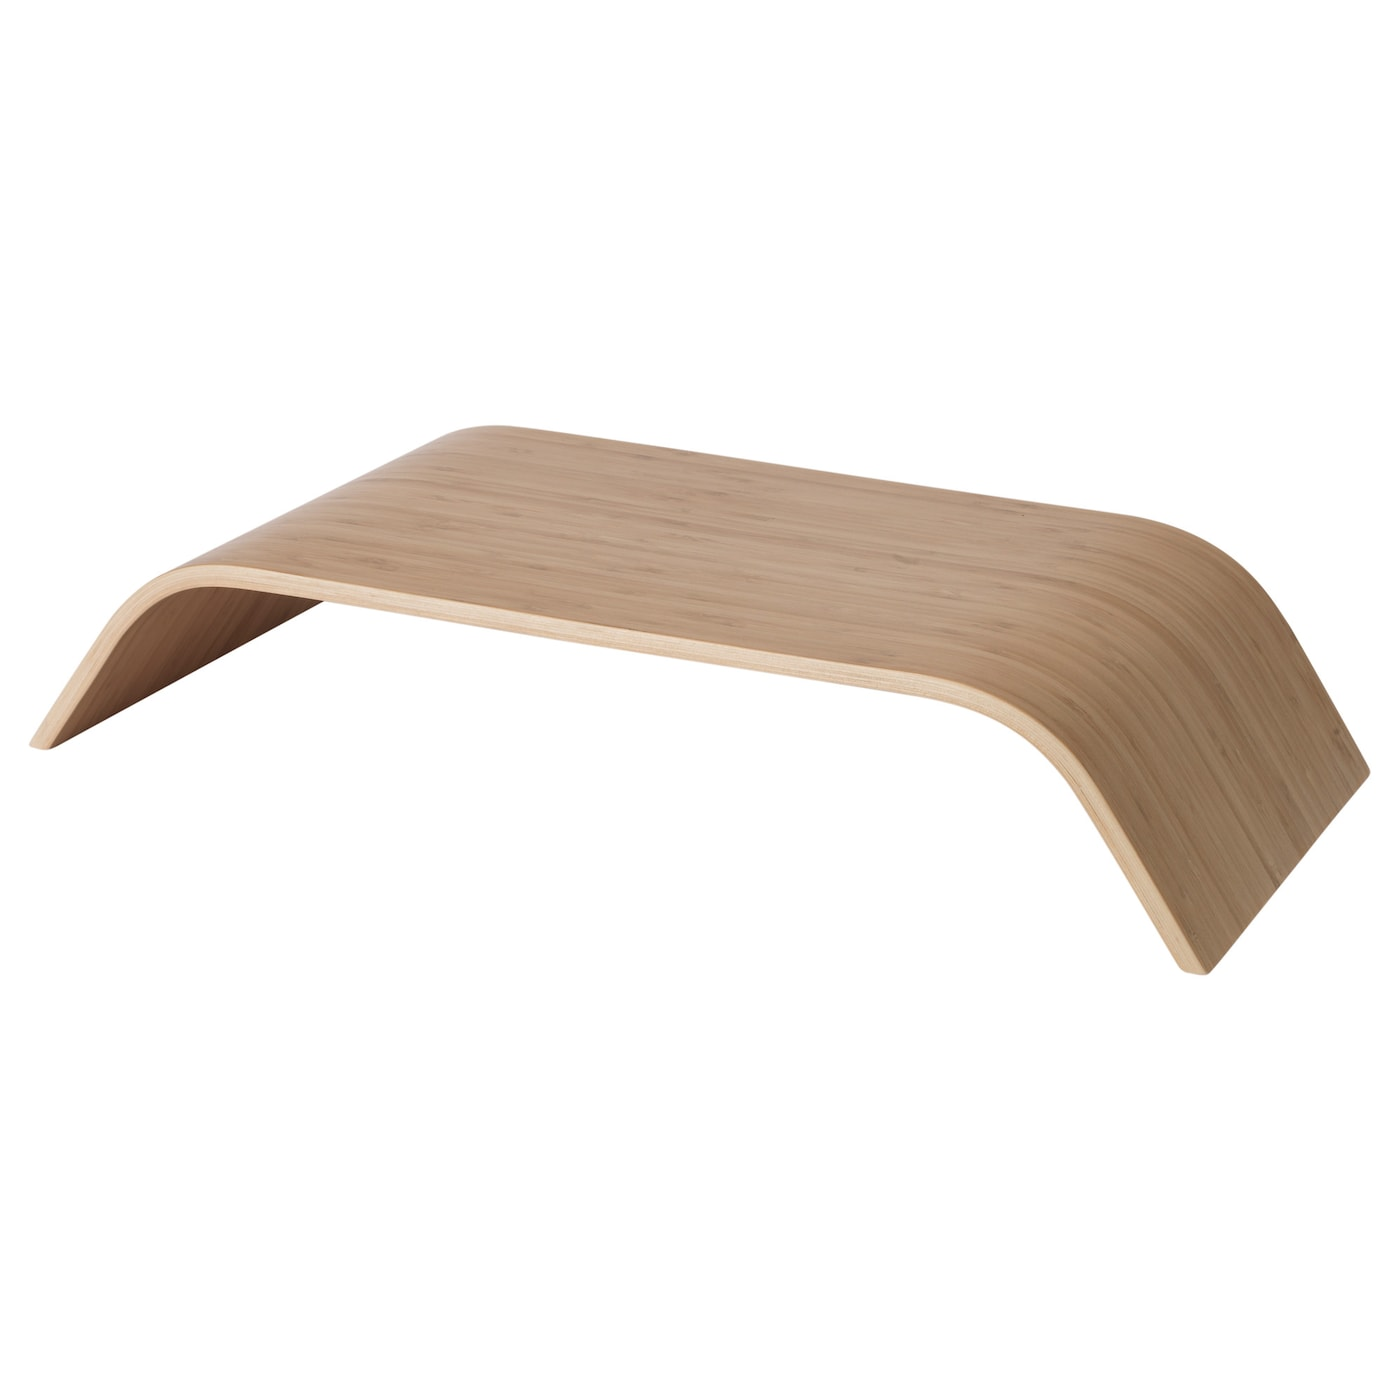 Zeer SIGFINN Monitor stand, fixed height Bamboo veneer - IKEA #DM32